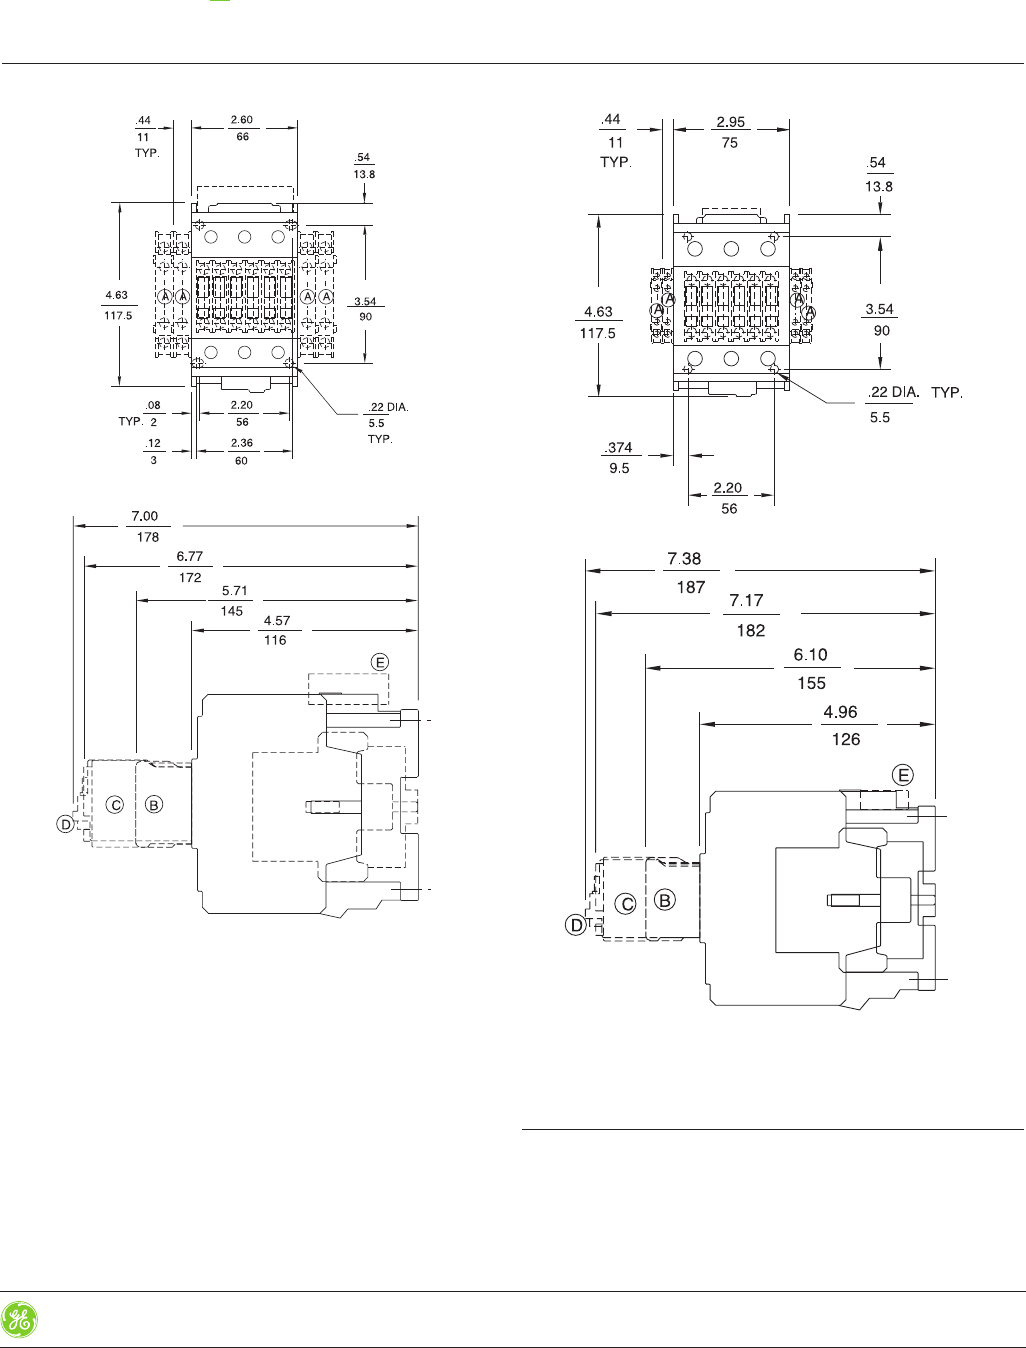 ge control catalog section 5 145378 Outlet Wiring Diagram geindustrial control catalog 5 89